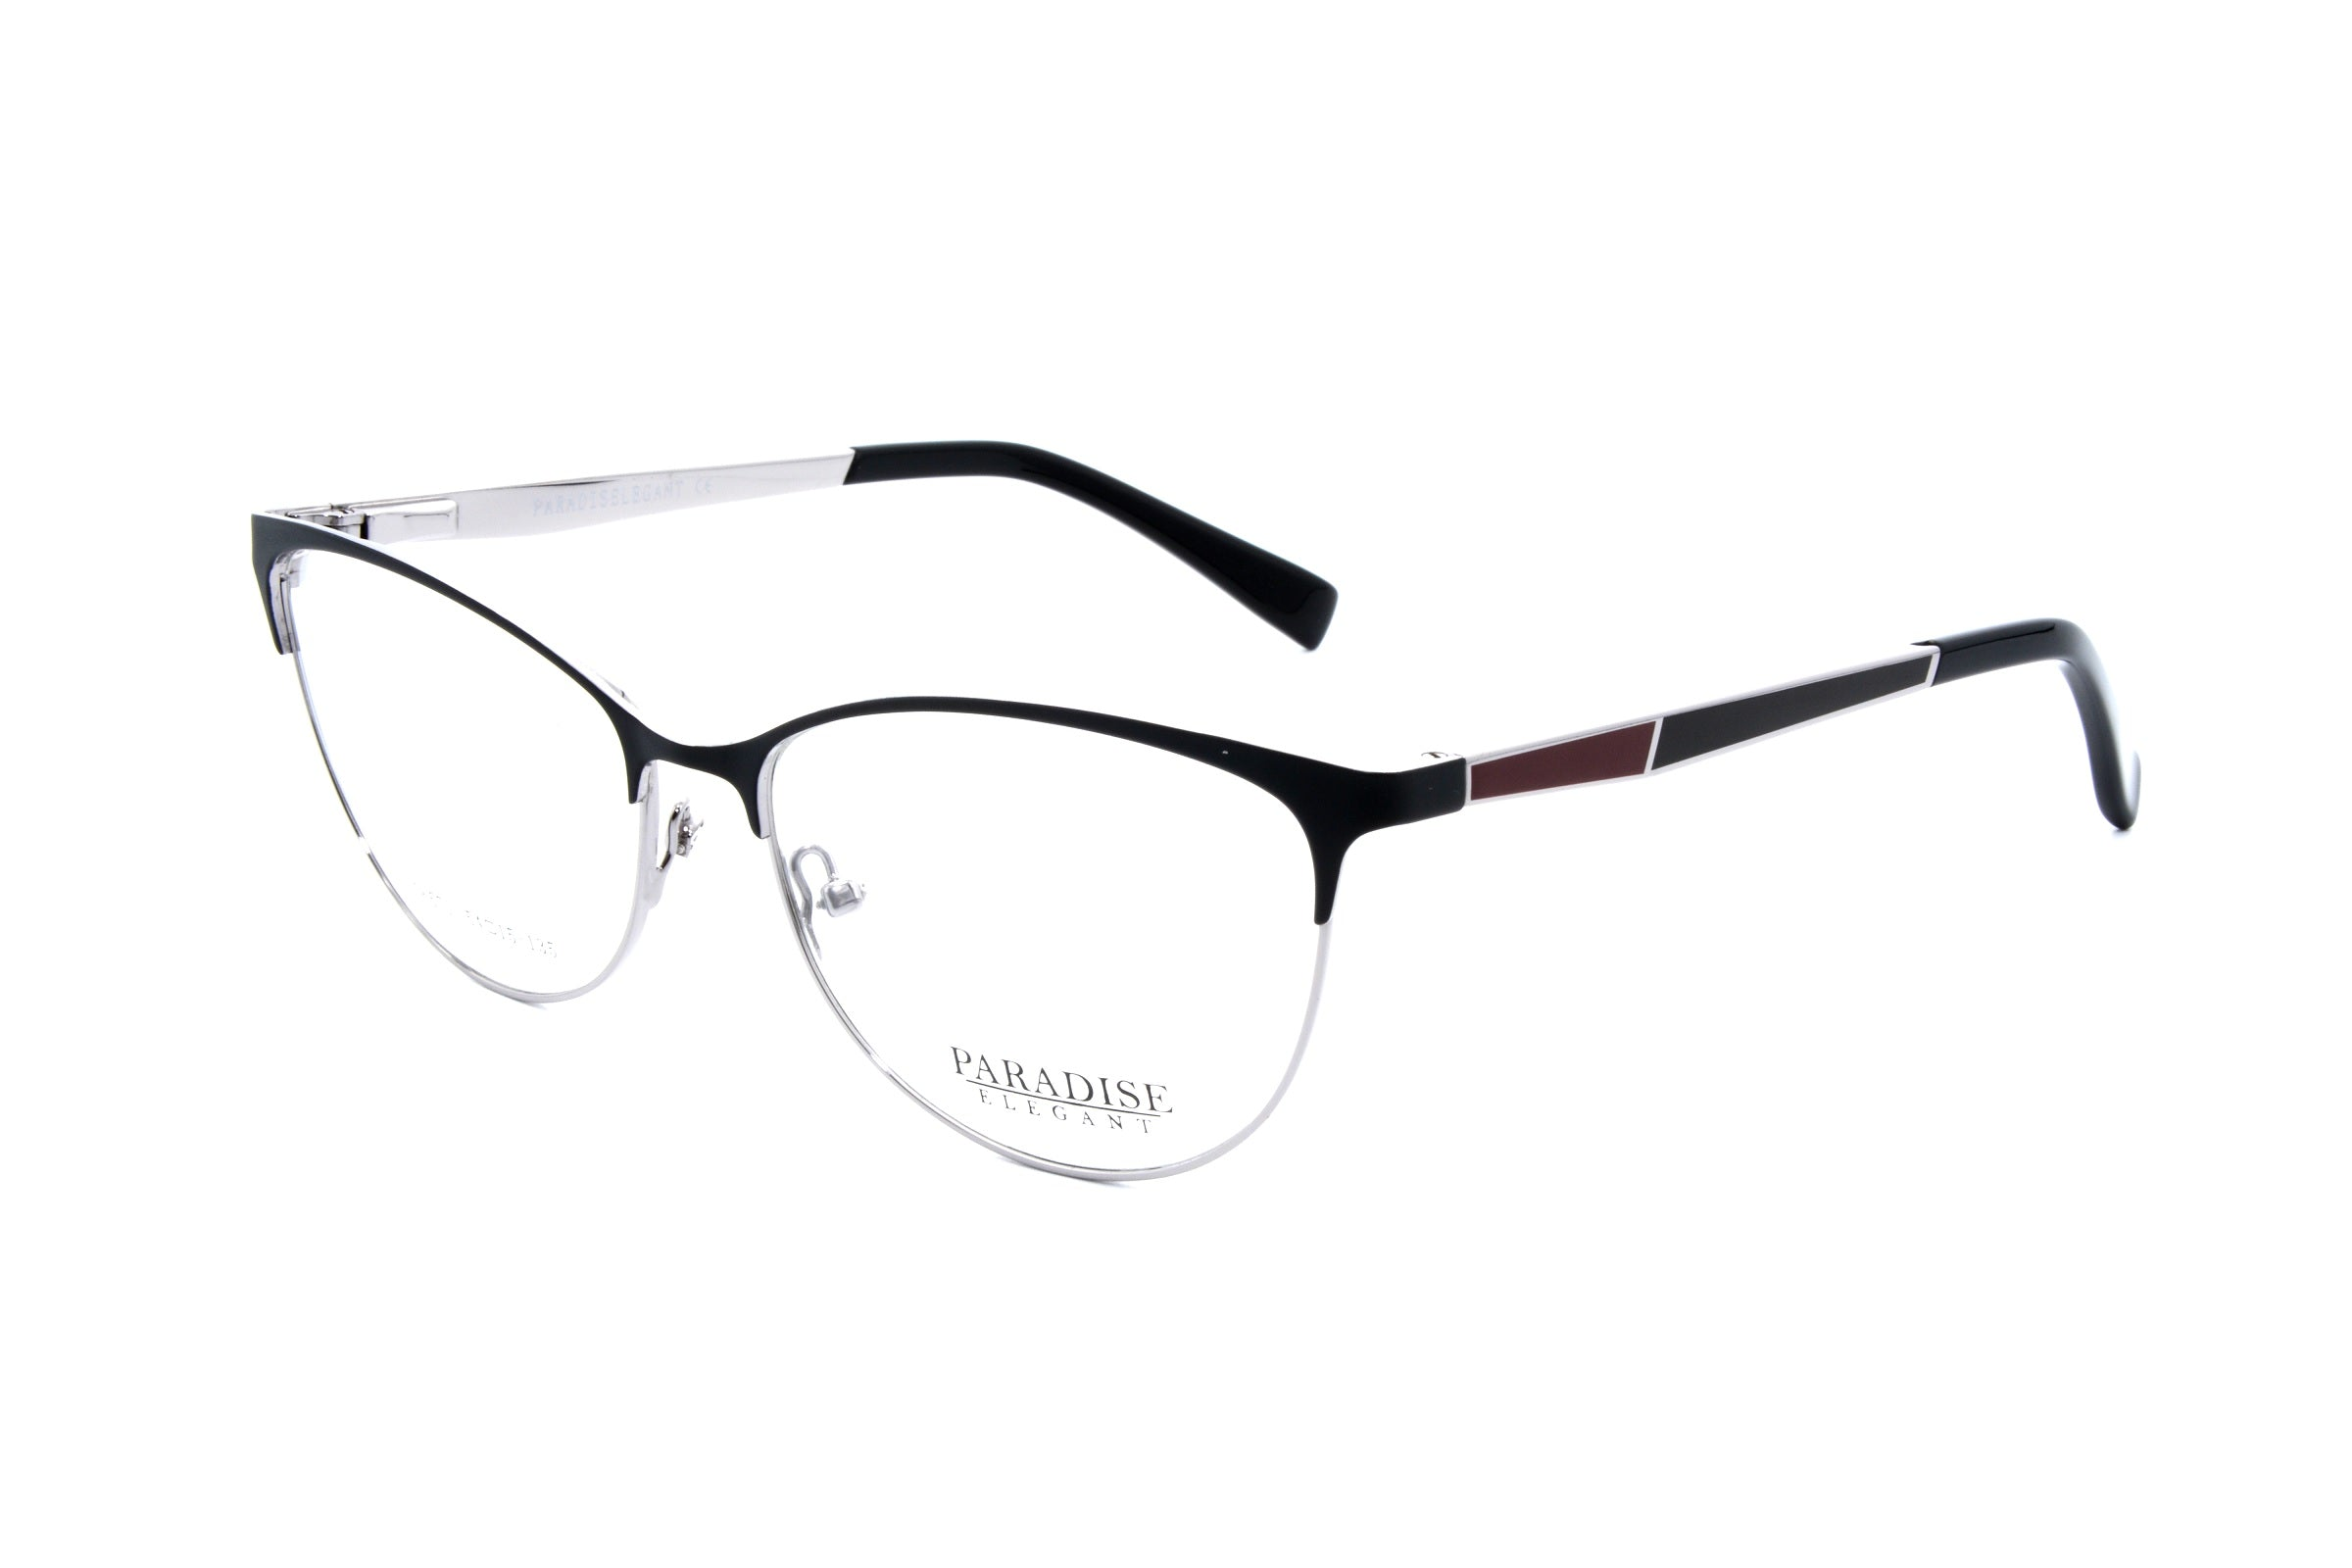 Paradise eyewear 76571, C1 - Optics Trading